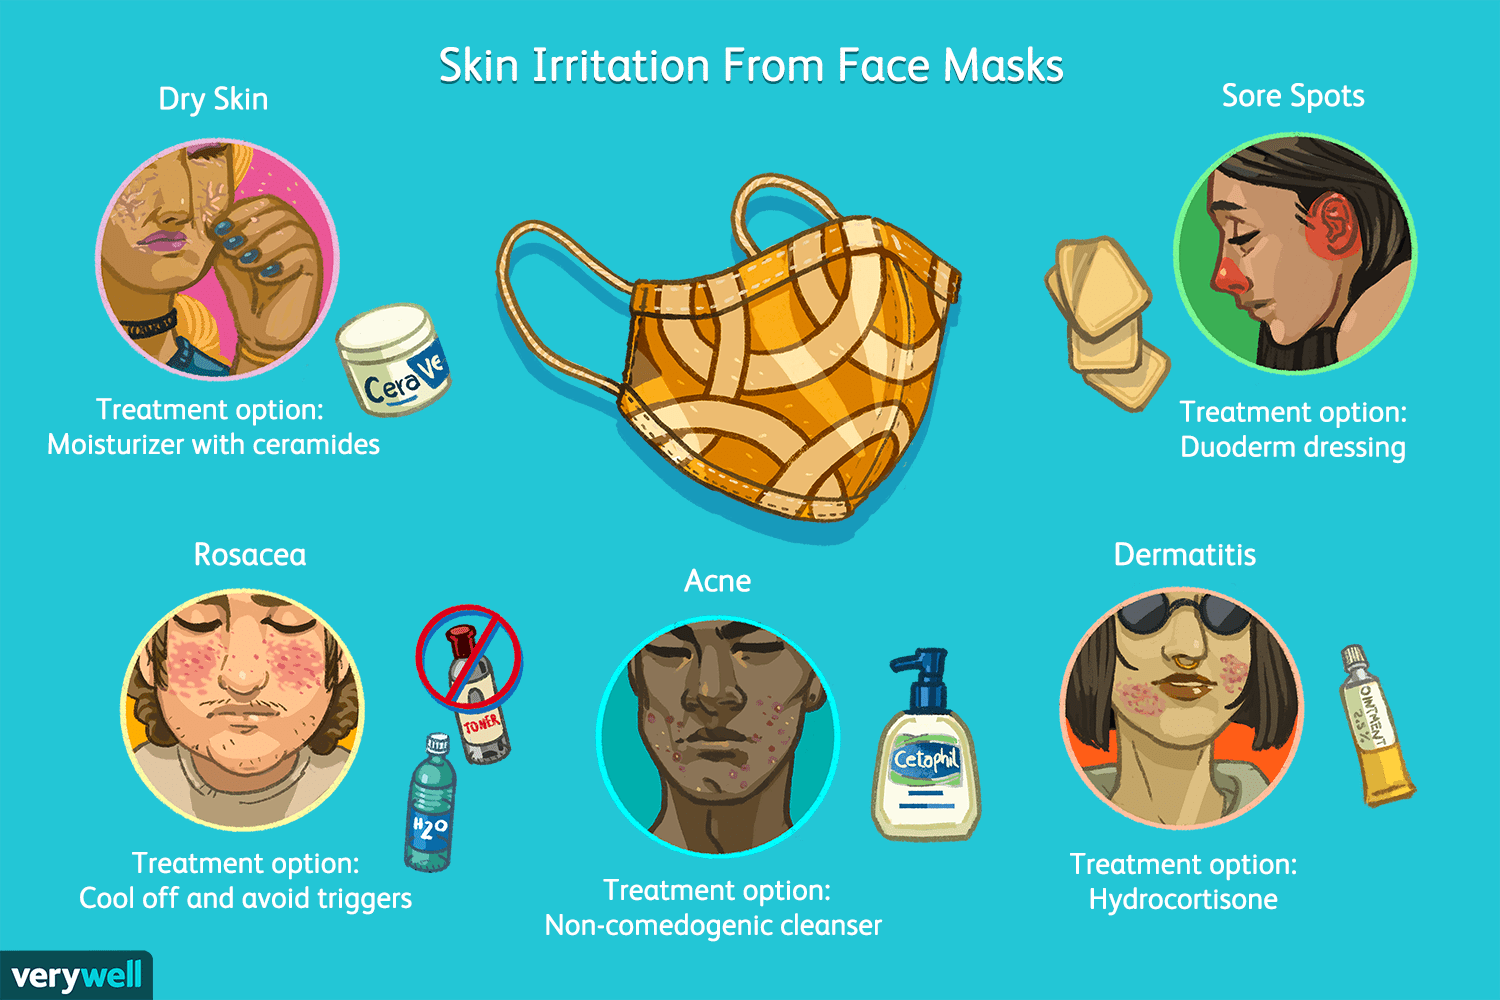 face-mask-skin-irritation-4843754-ADD-FINAL-1b6790c947ea423c8941623cc0873cbf.png